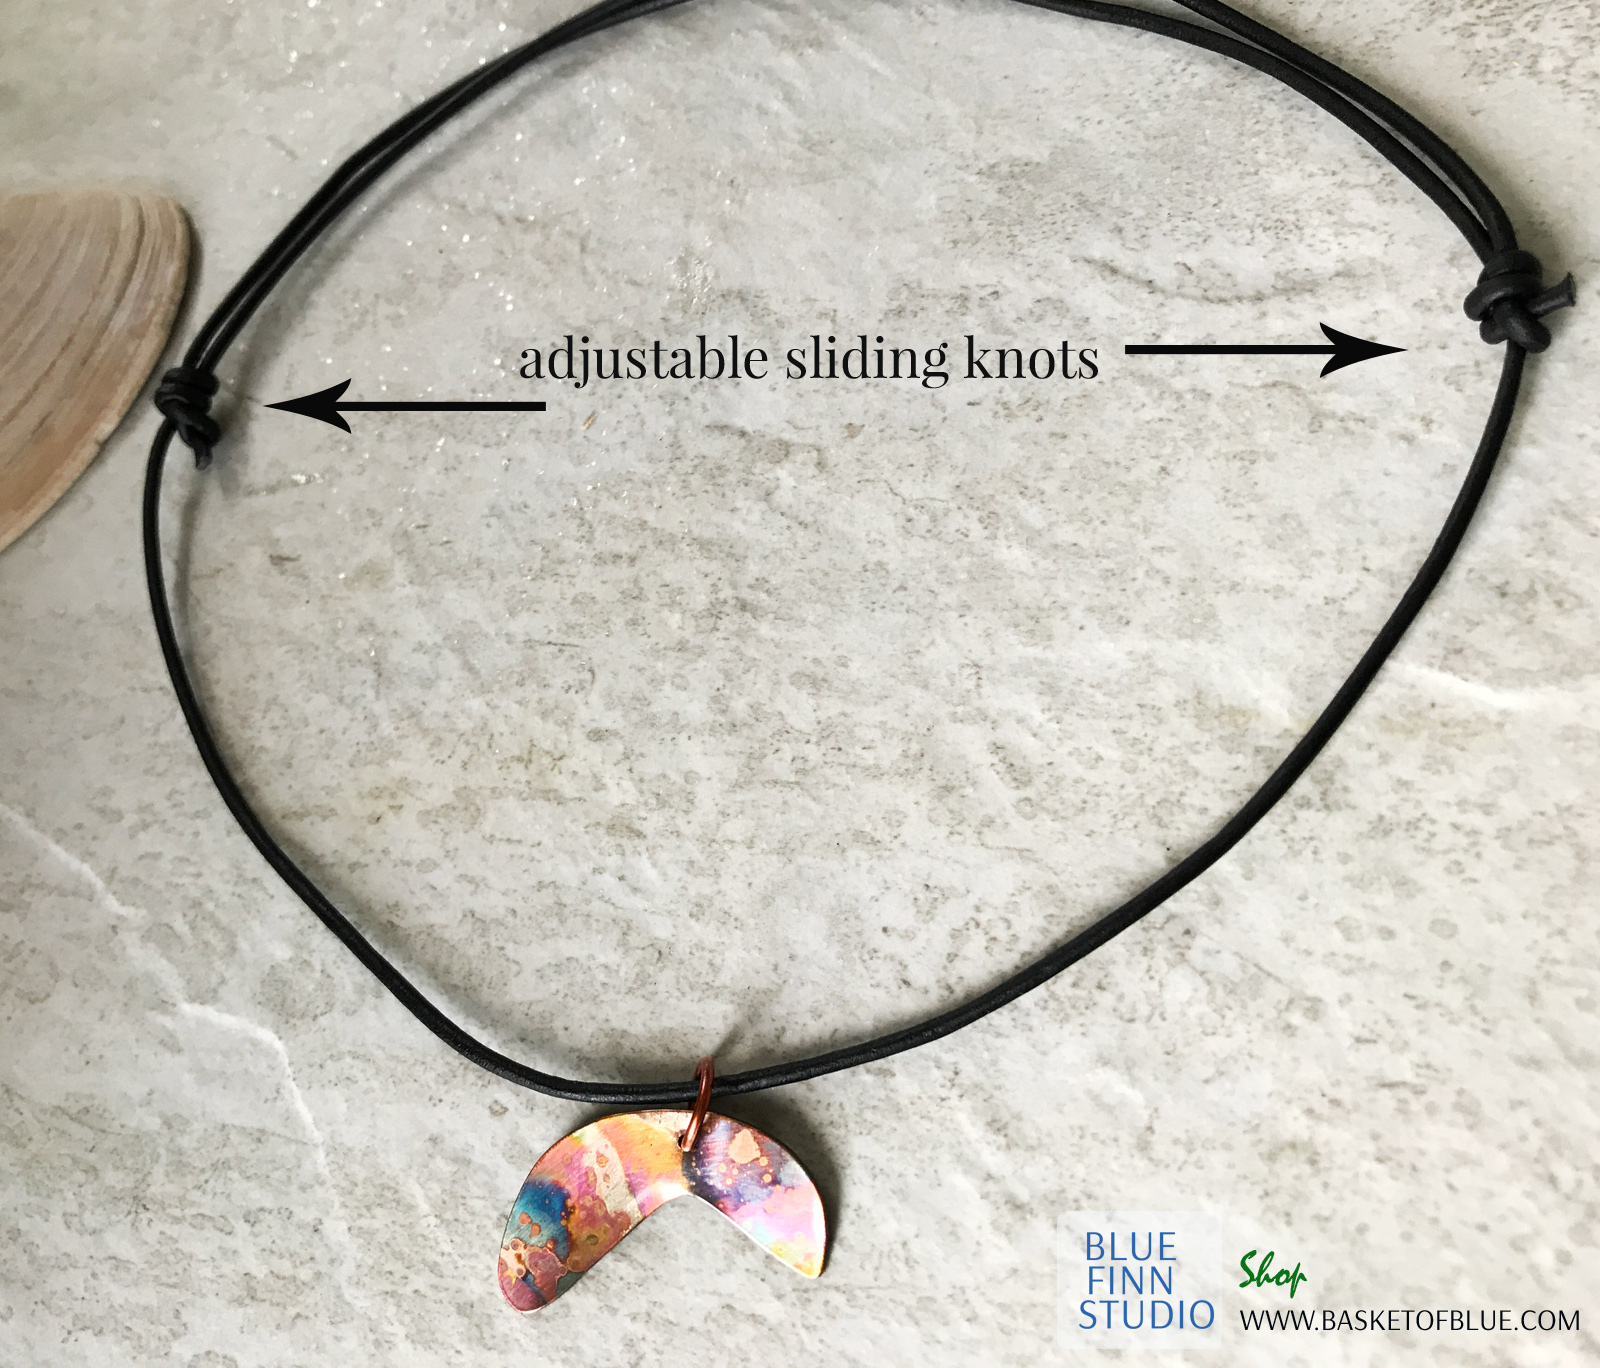 Surfer Kite Surfing Necklace with knot closure